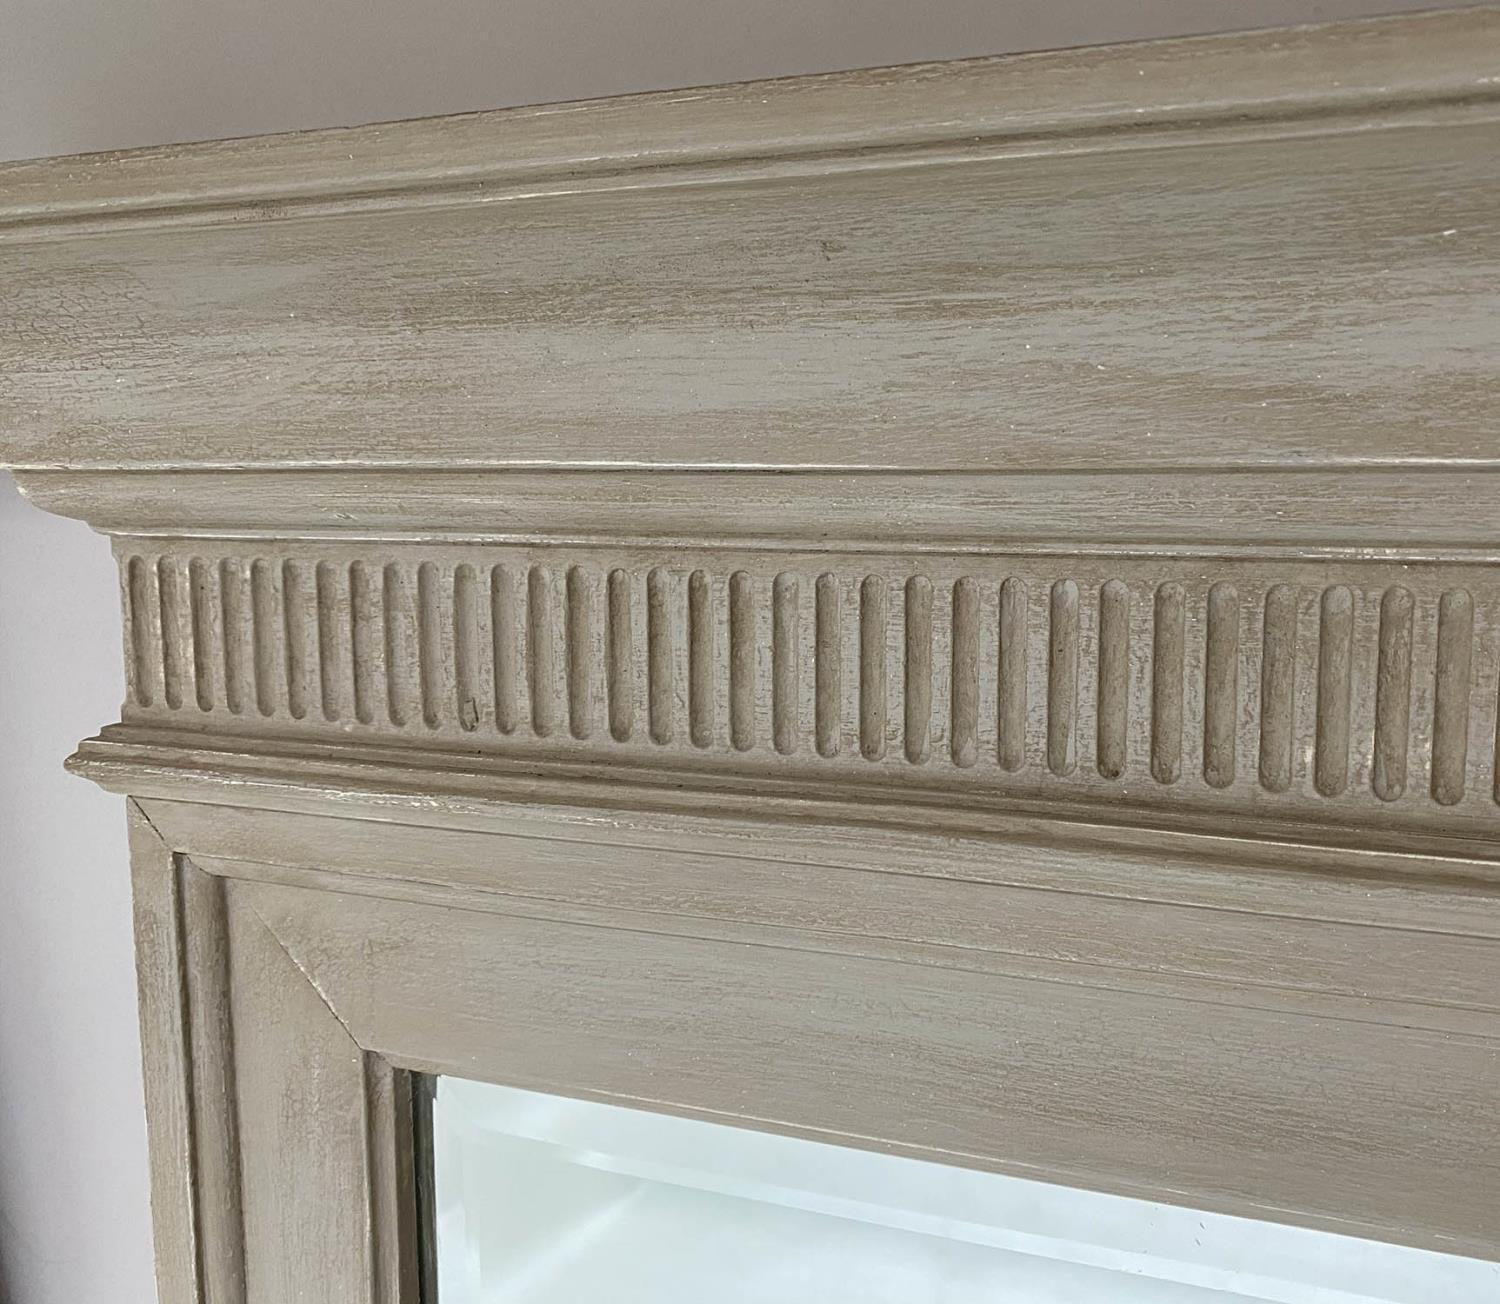 PIER MIRRORS, a pair, Regency style grey painted each with cornice, fluted frieze and bevelled - Image 6 of 6